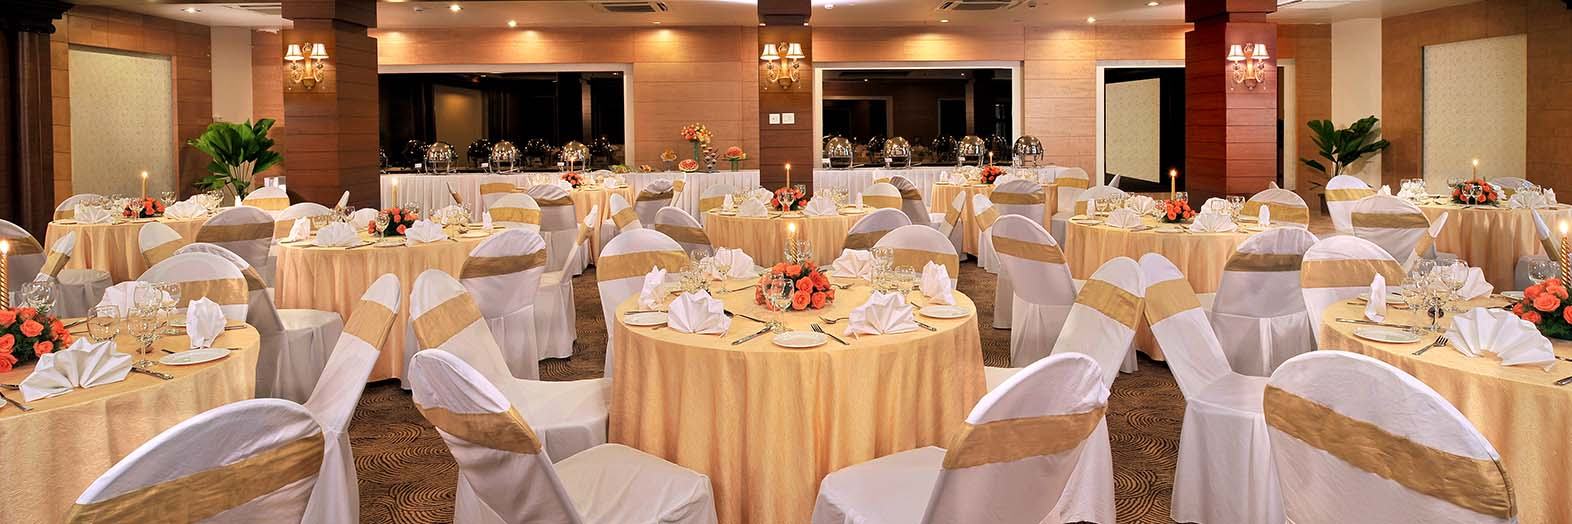 Fortune JP Palace - Meeting Venues in Mysore